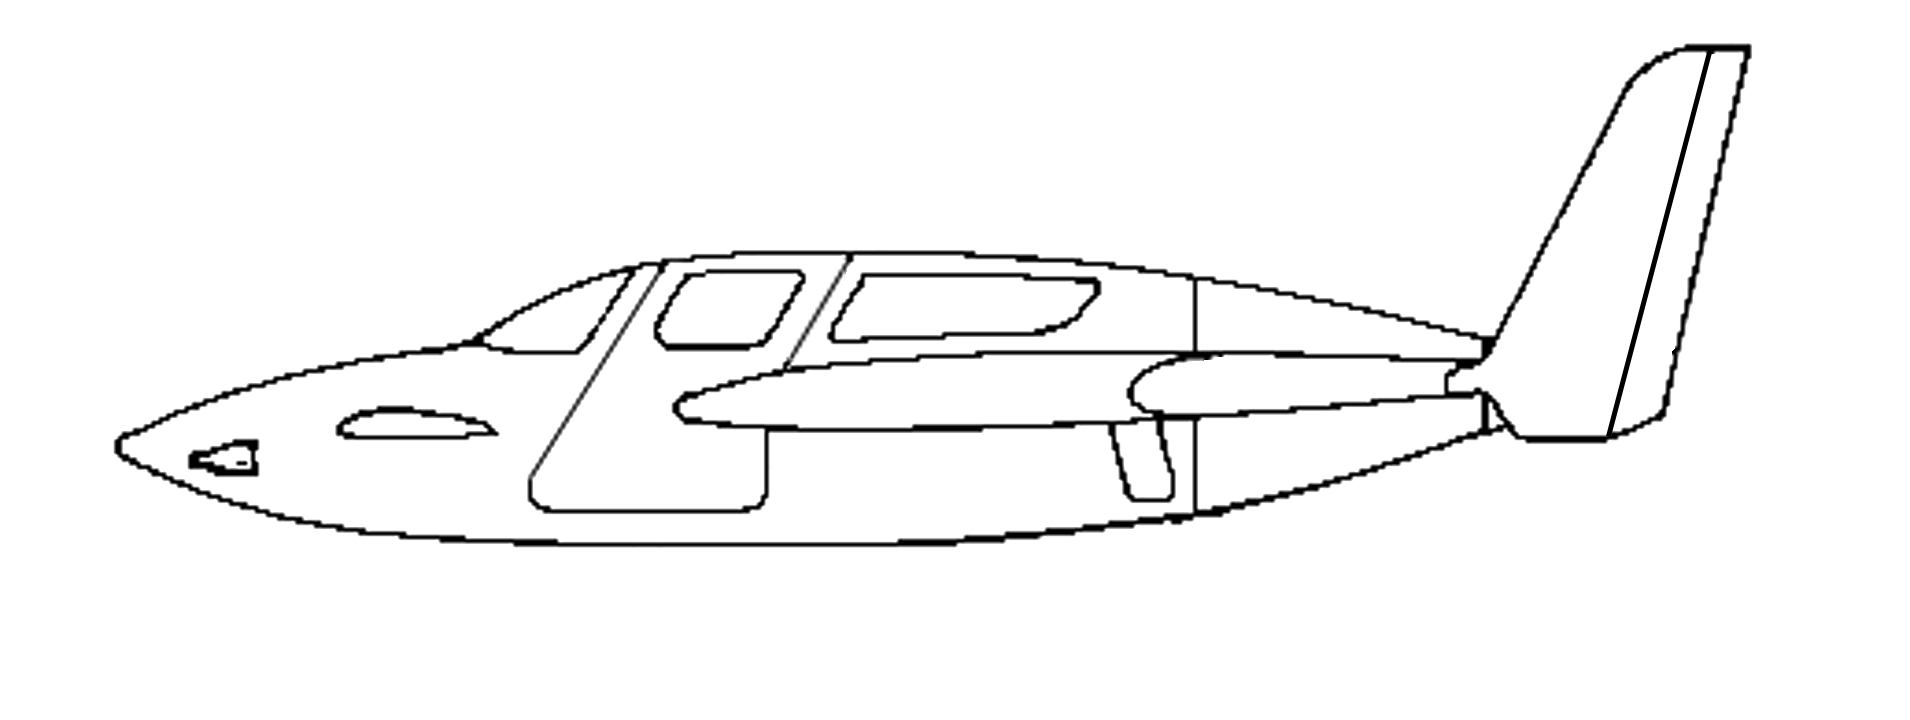 Line Drawing Jet : Airplane line drawings